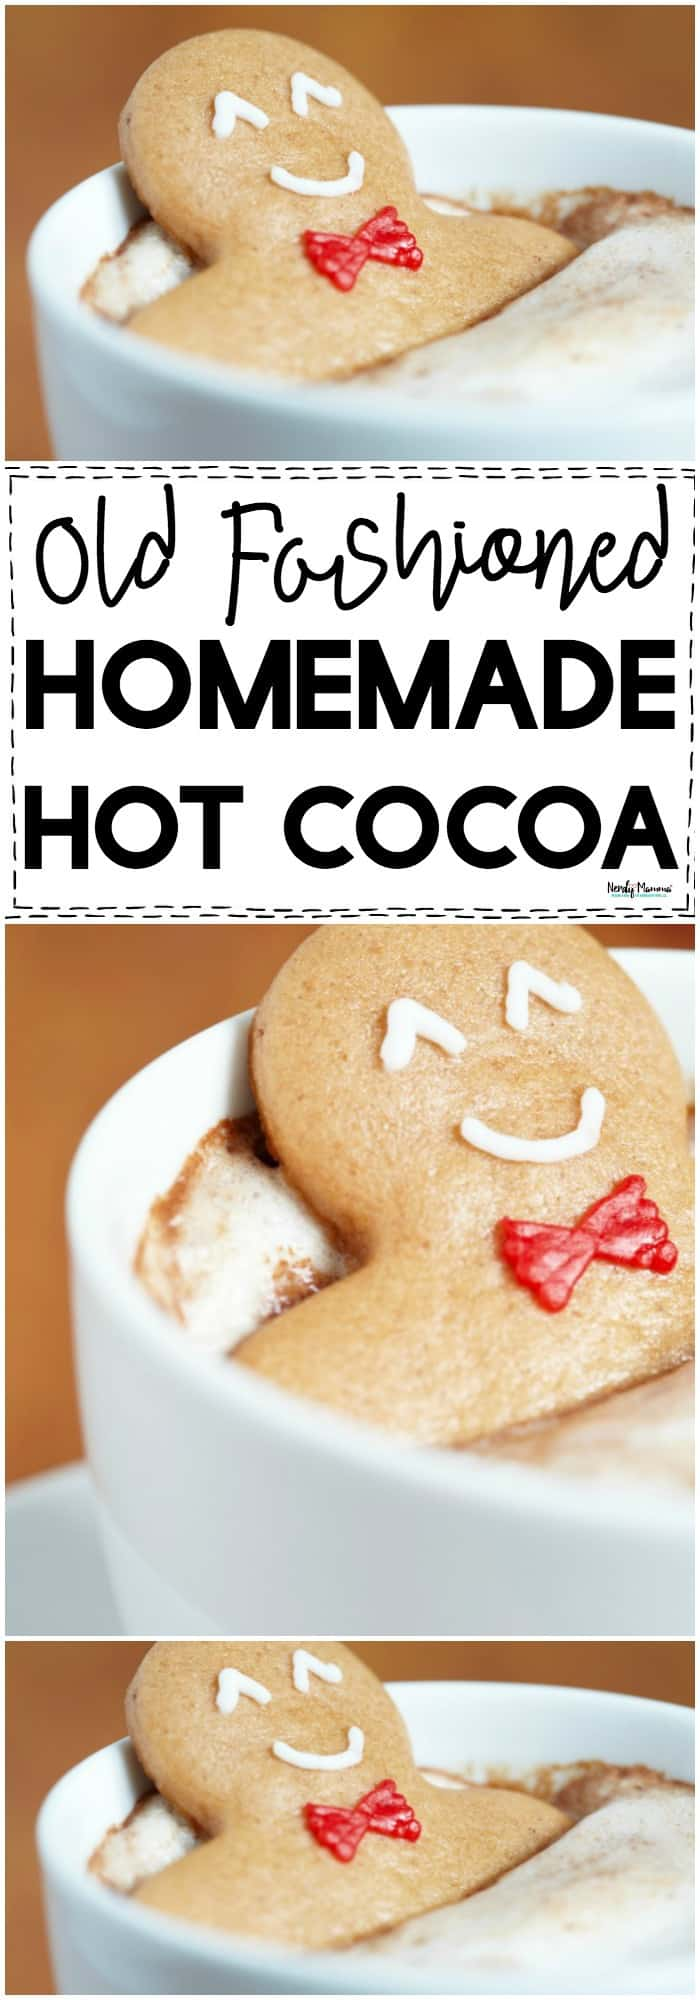 You've GOT to check out this old fashioned homemade hot cocoa recipe. It's to DIE for!